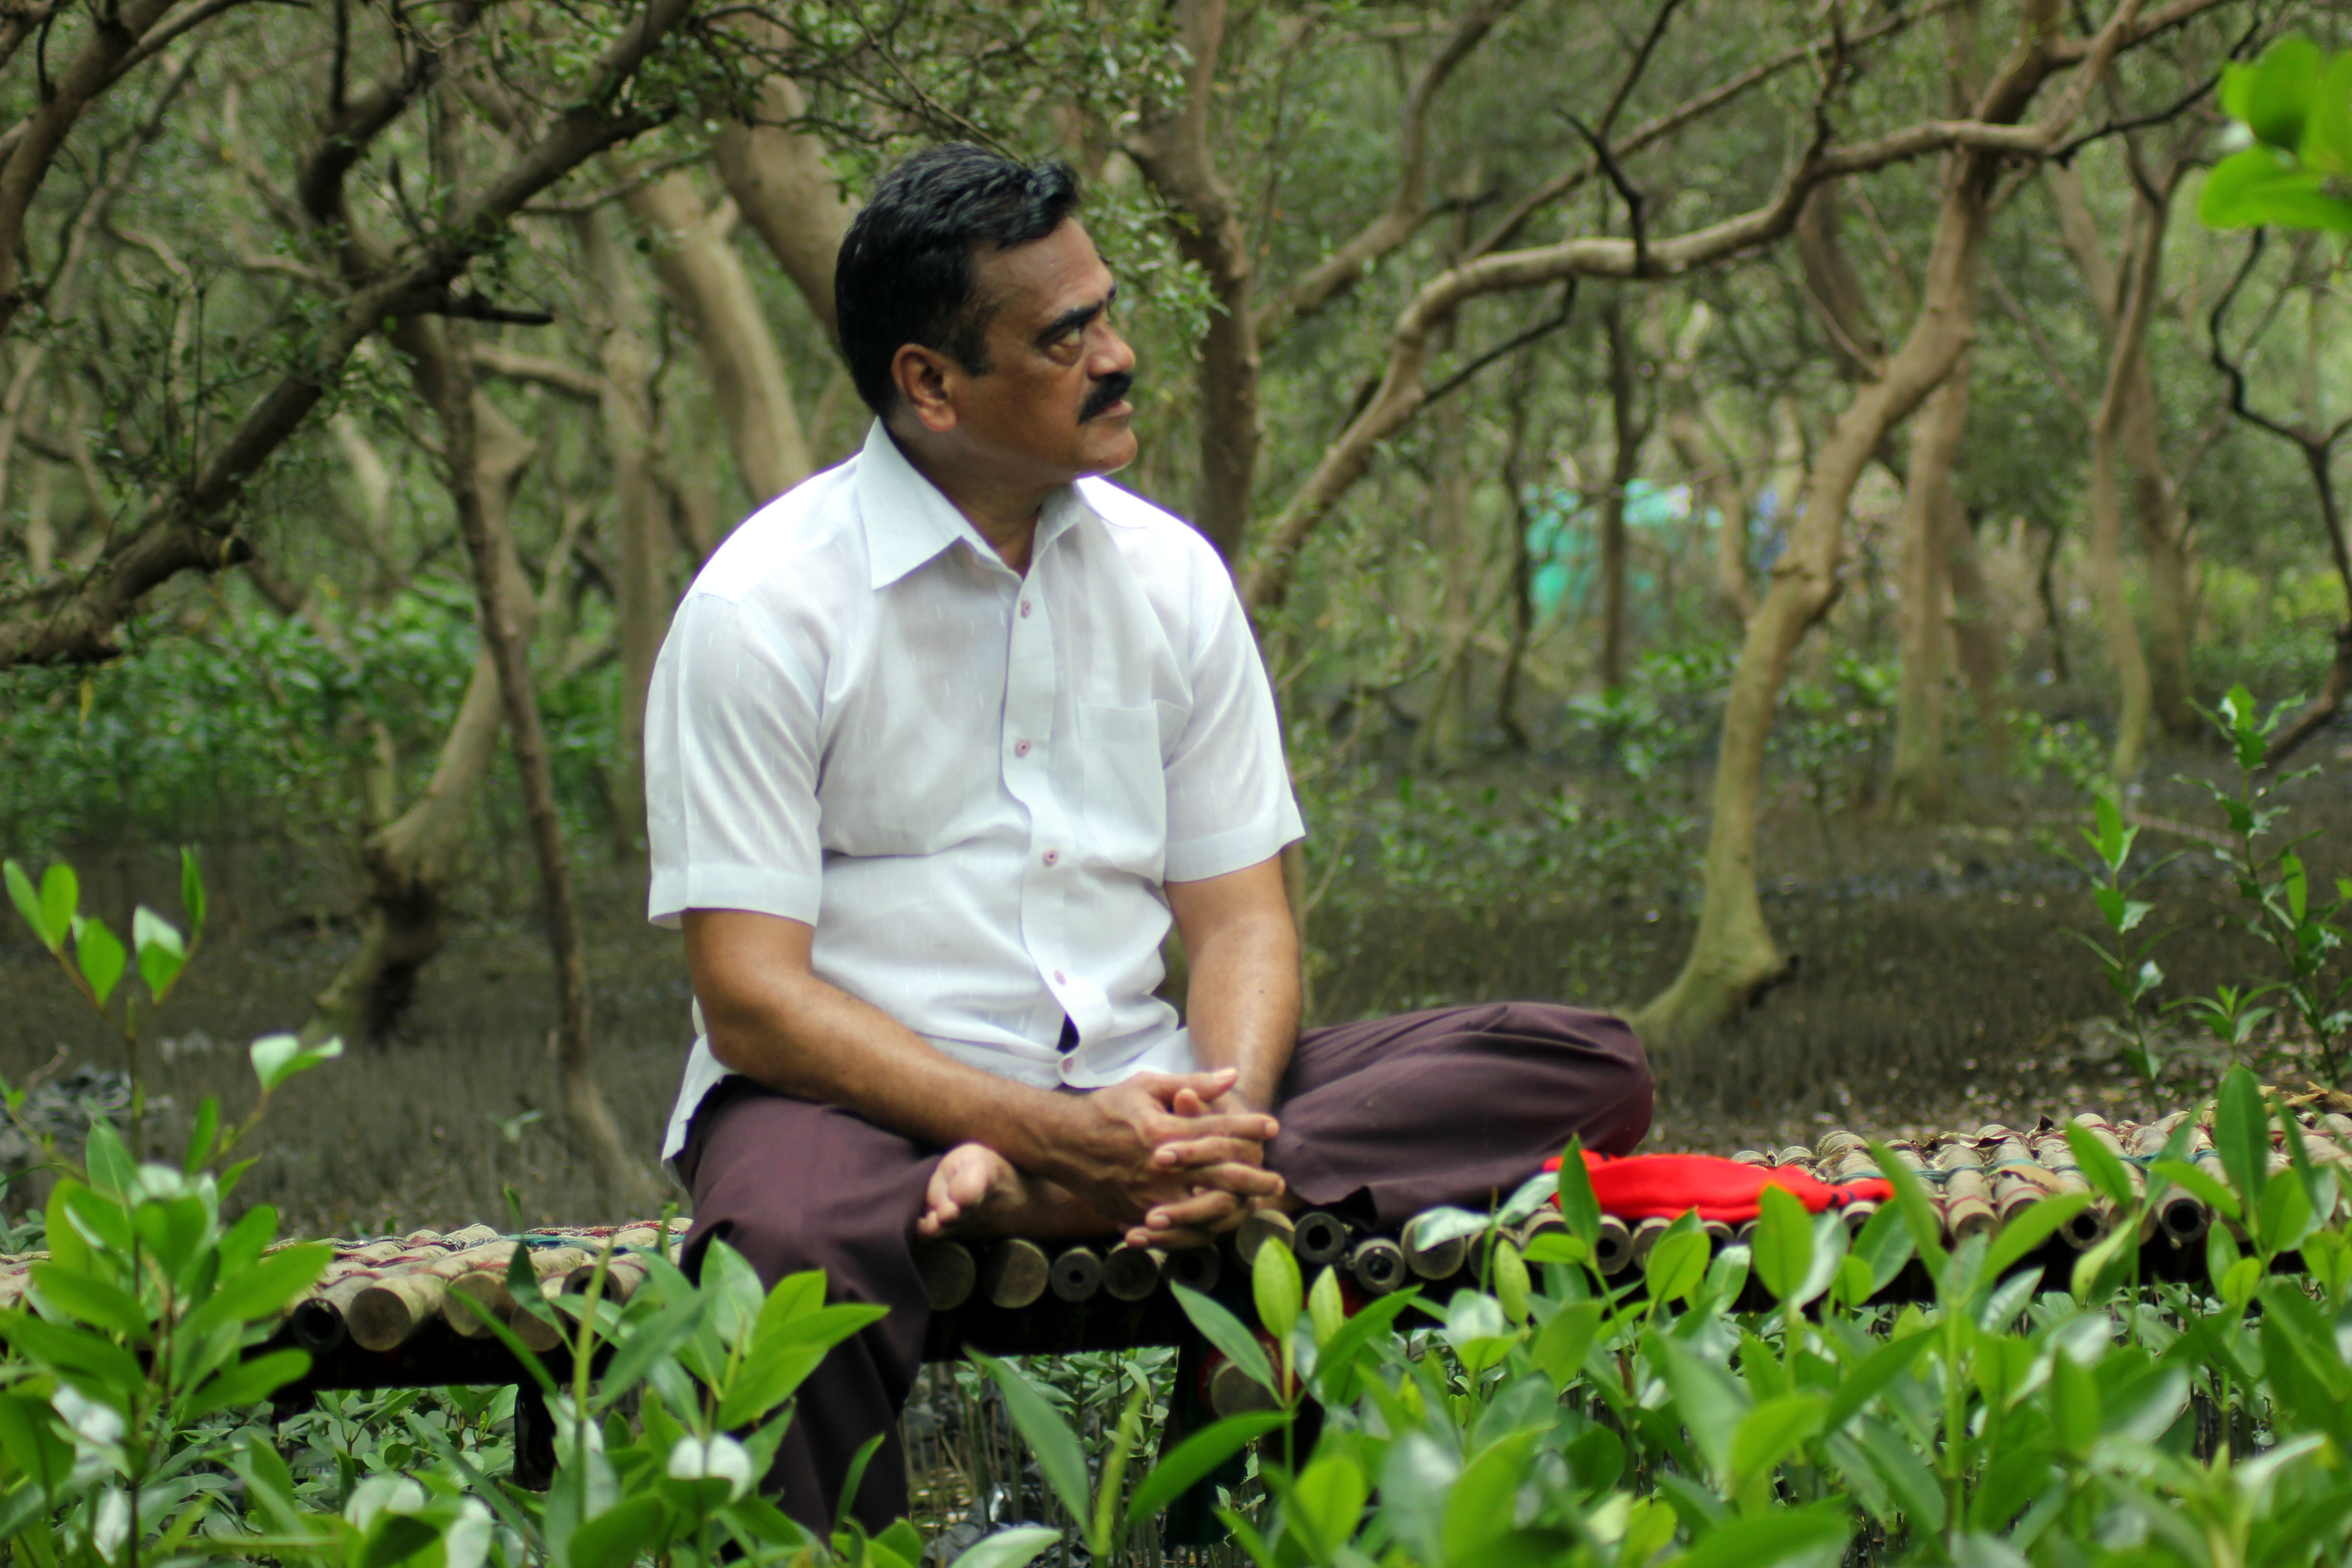 Nandkumar Pawar, a resident and conservationist critical of the ecological destruction. Photo Shiva Thorat